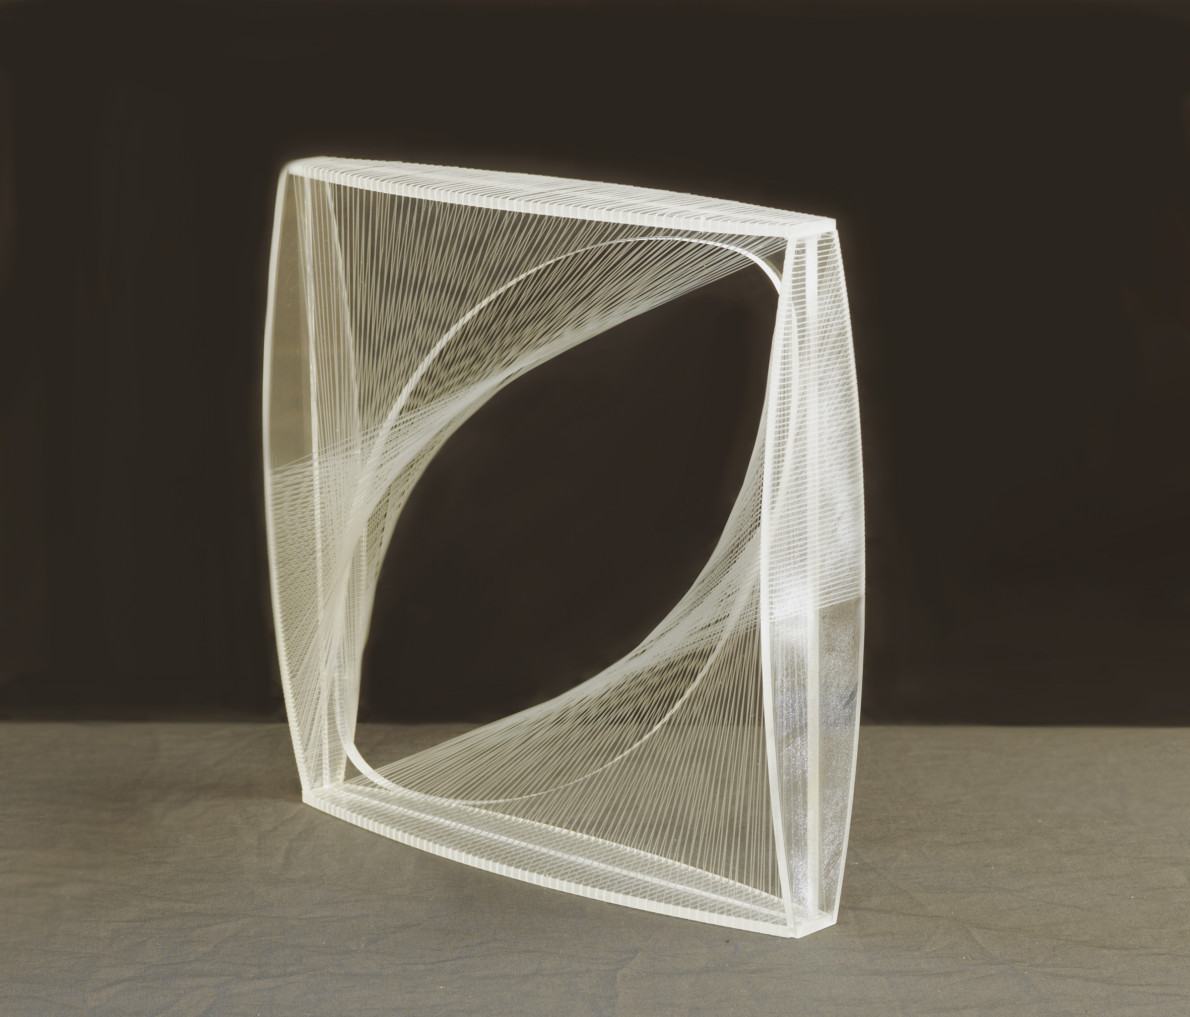 Naum Gabo, Linear Construction in Space No. 1, 1965